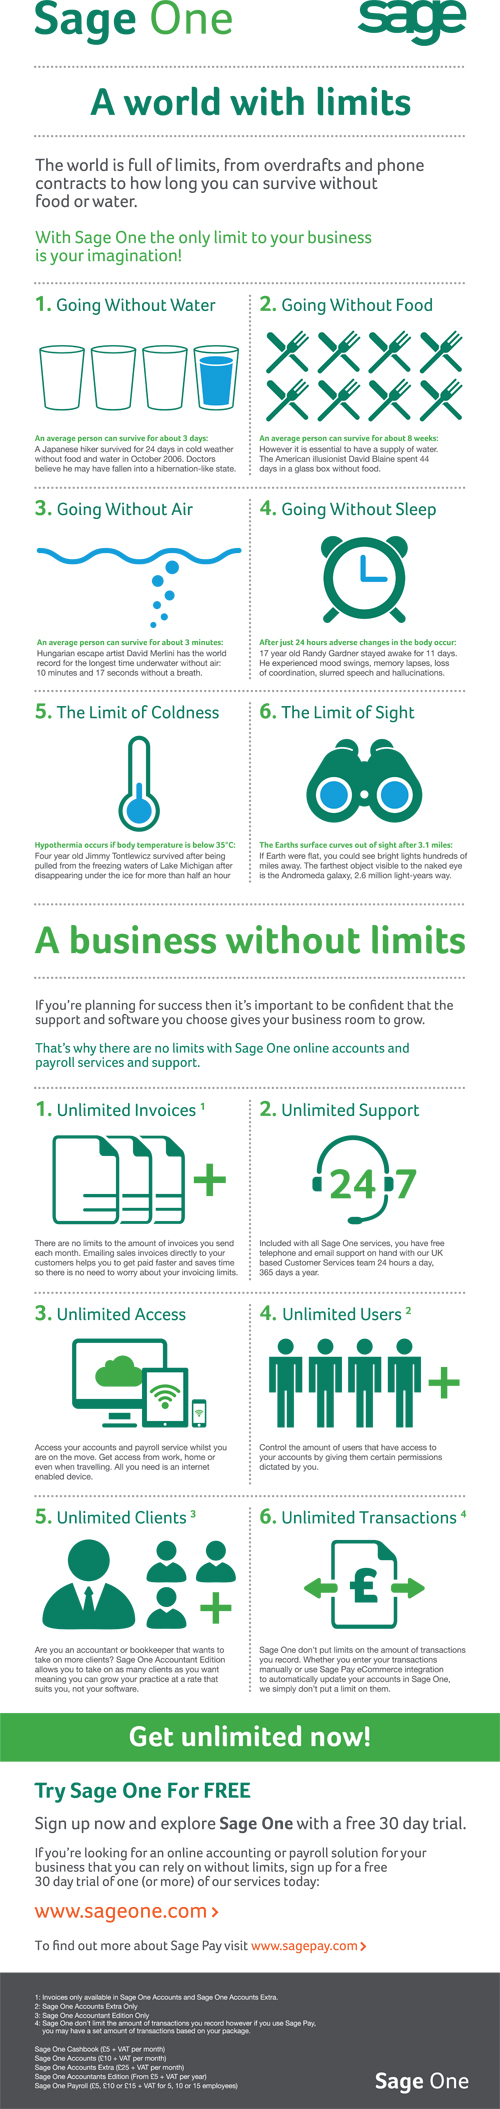 A Business Without Limits - Sage One infographic